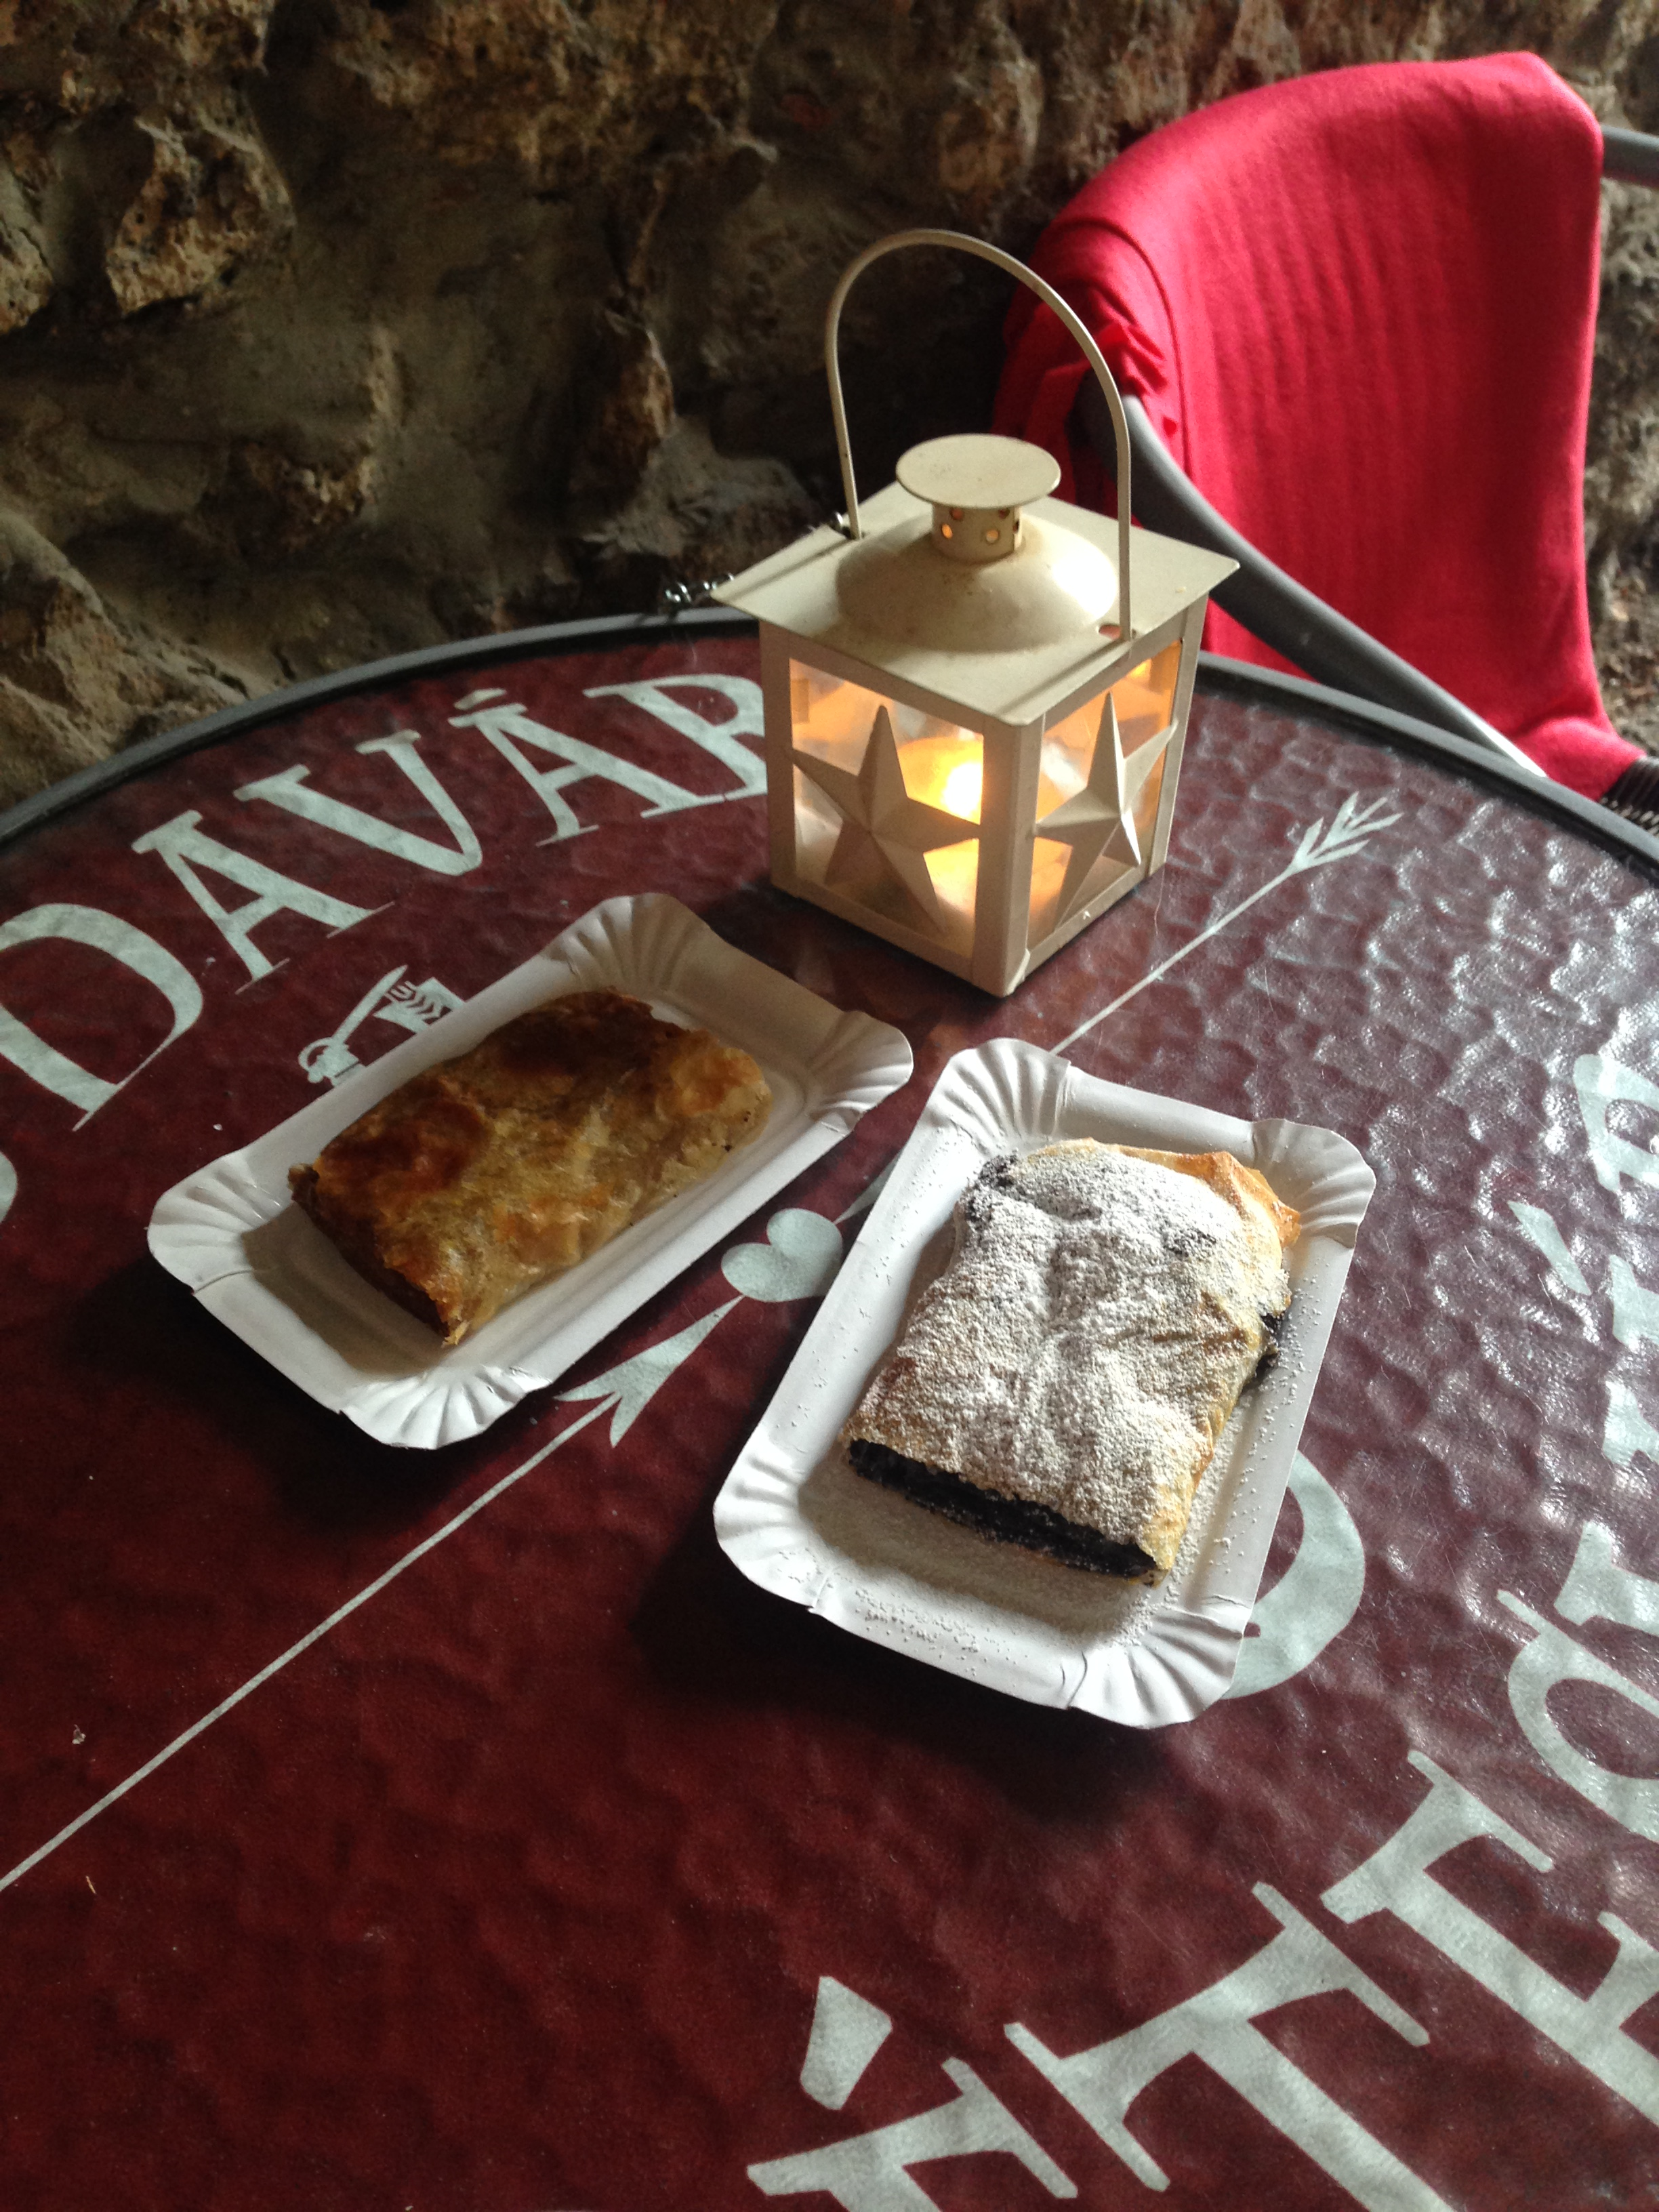 Poppy seed and cabbage strudel we got on the tour. Weird flavors but amazing!